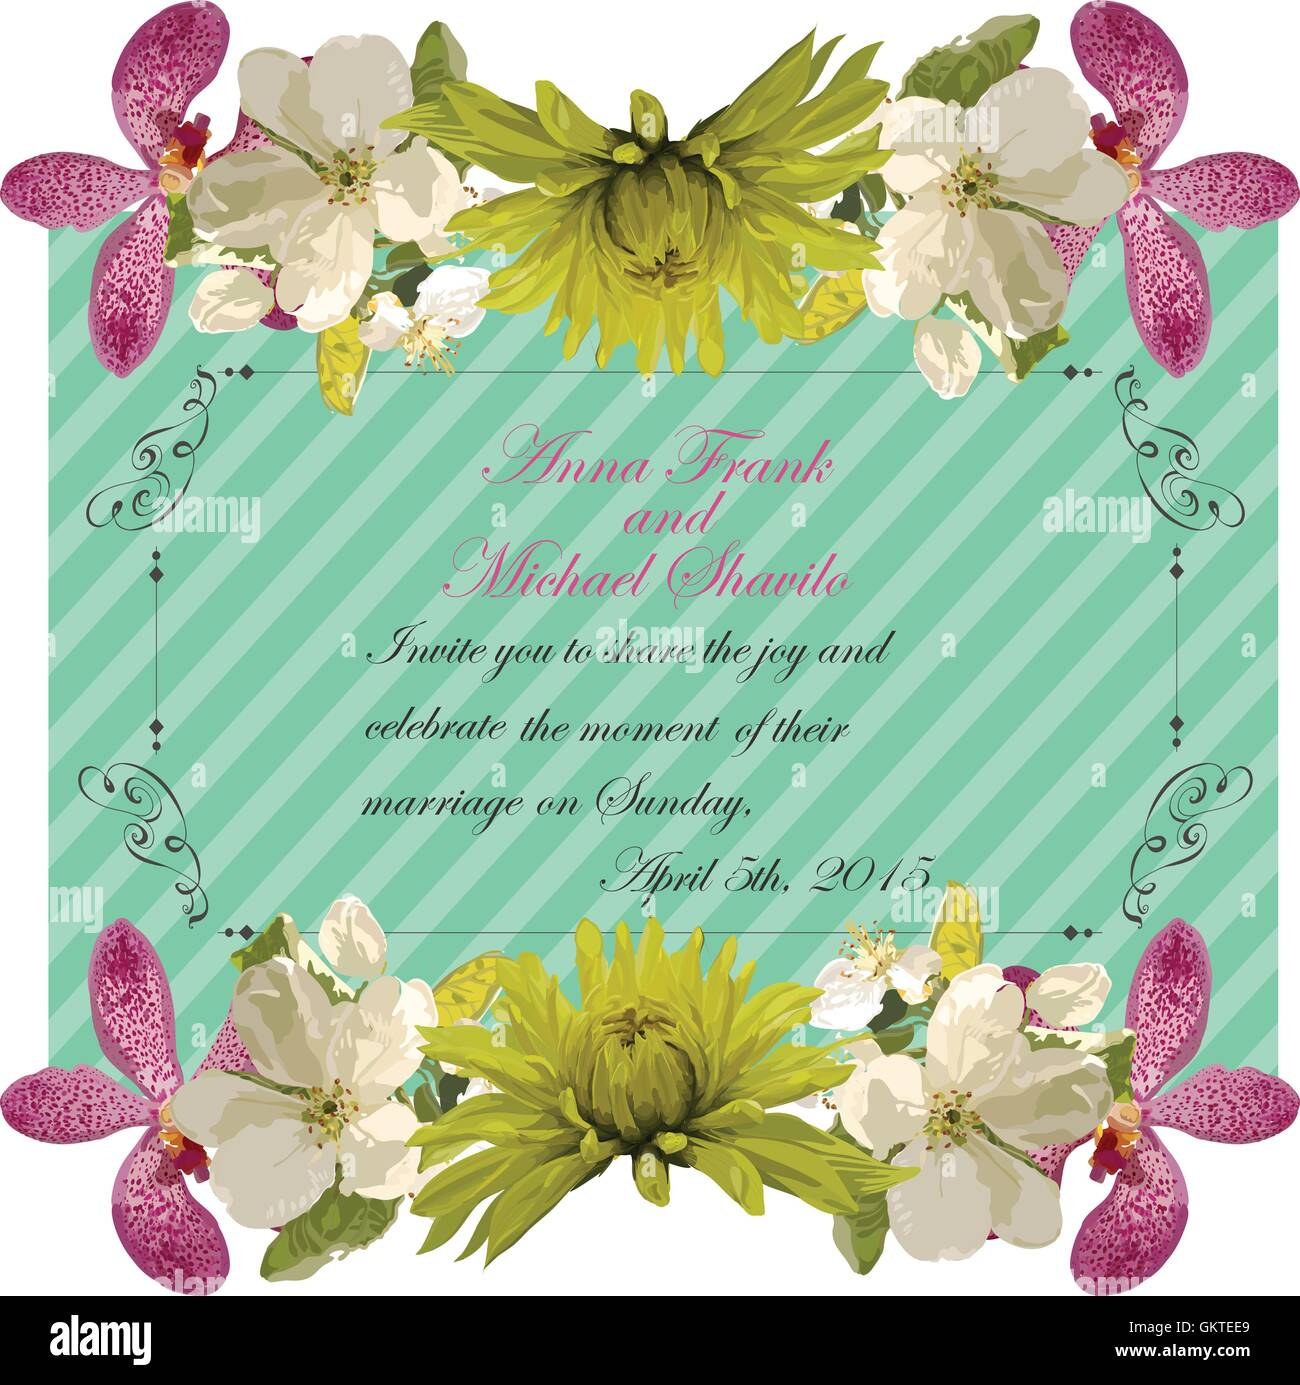 Floral Invitation Card With Beautiful Spring Flowers And Banner